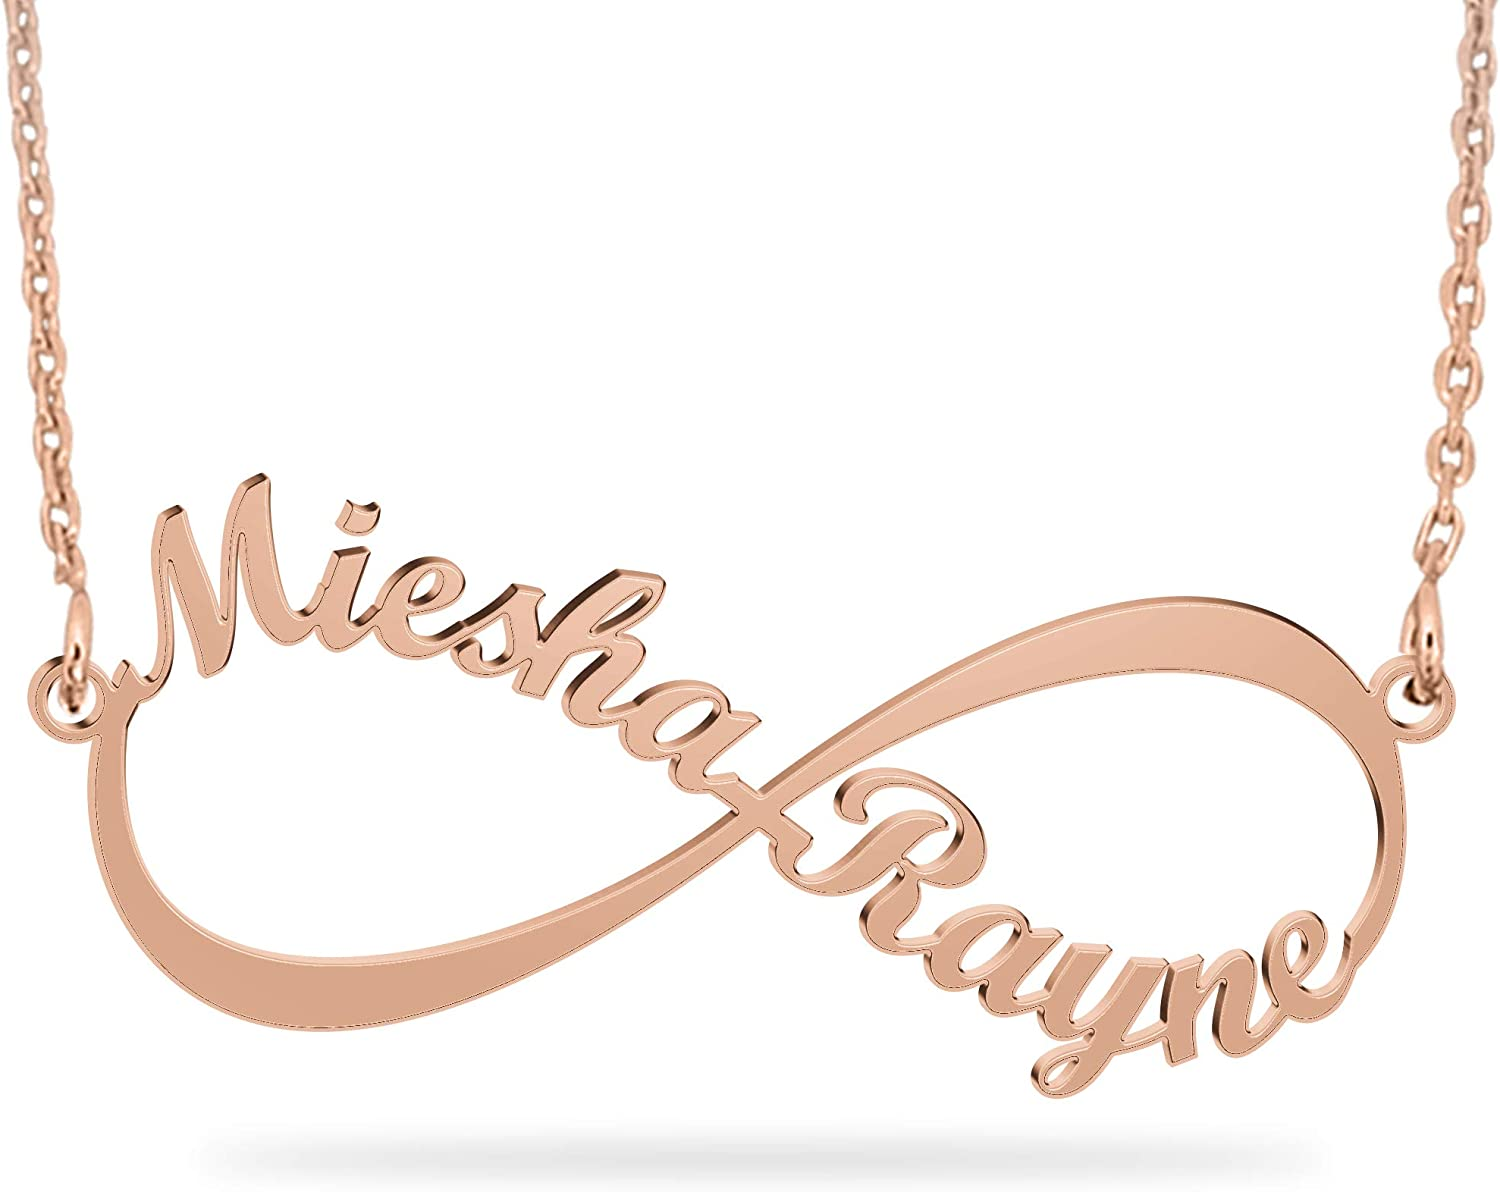 Christmas Anniversary Bridal Pendant Wedding Personalized Gifts For Her IMOGEN Gold Plated Name Necklace /& Name Bracelet Gift Set